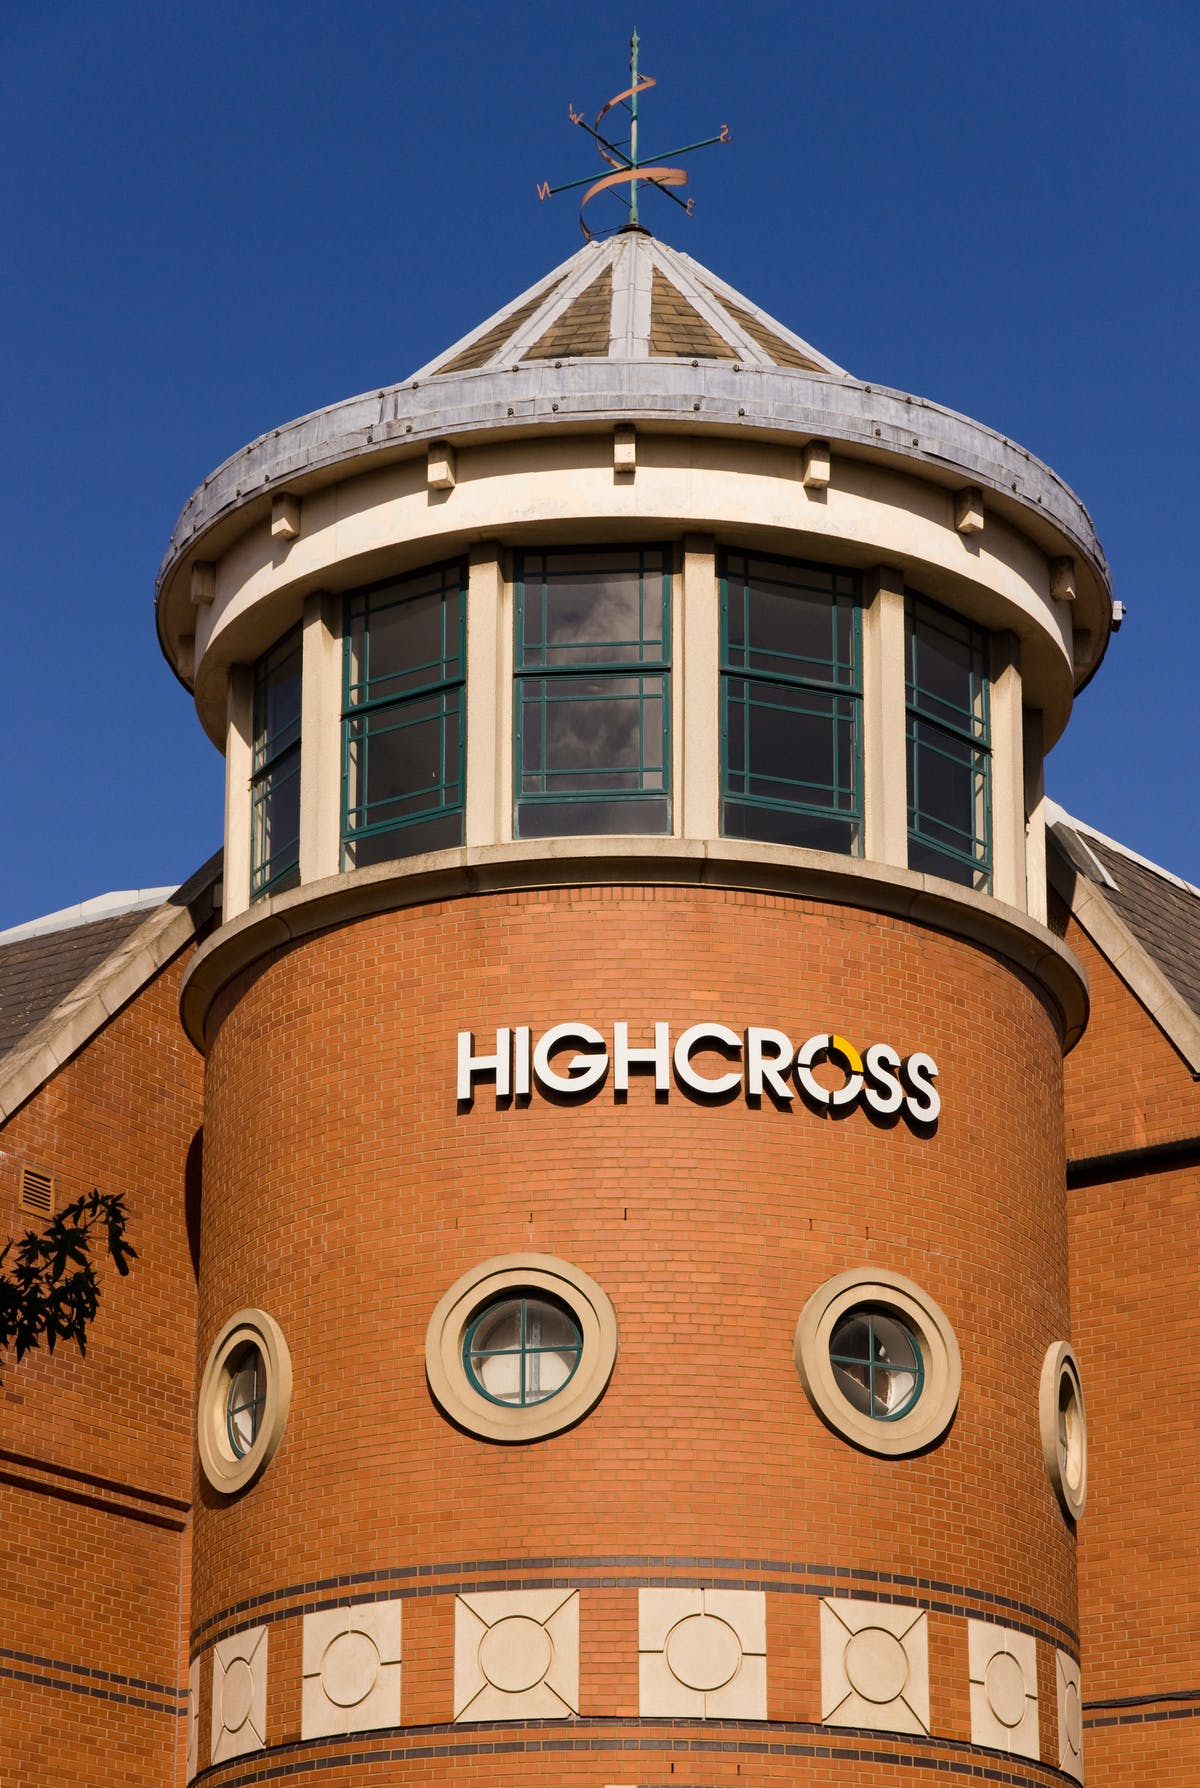 Highcross Shopping Centre